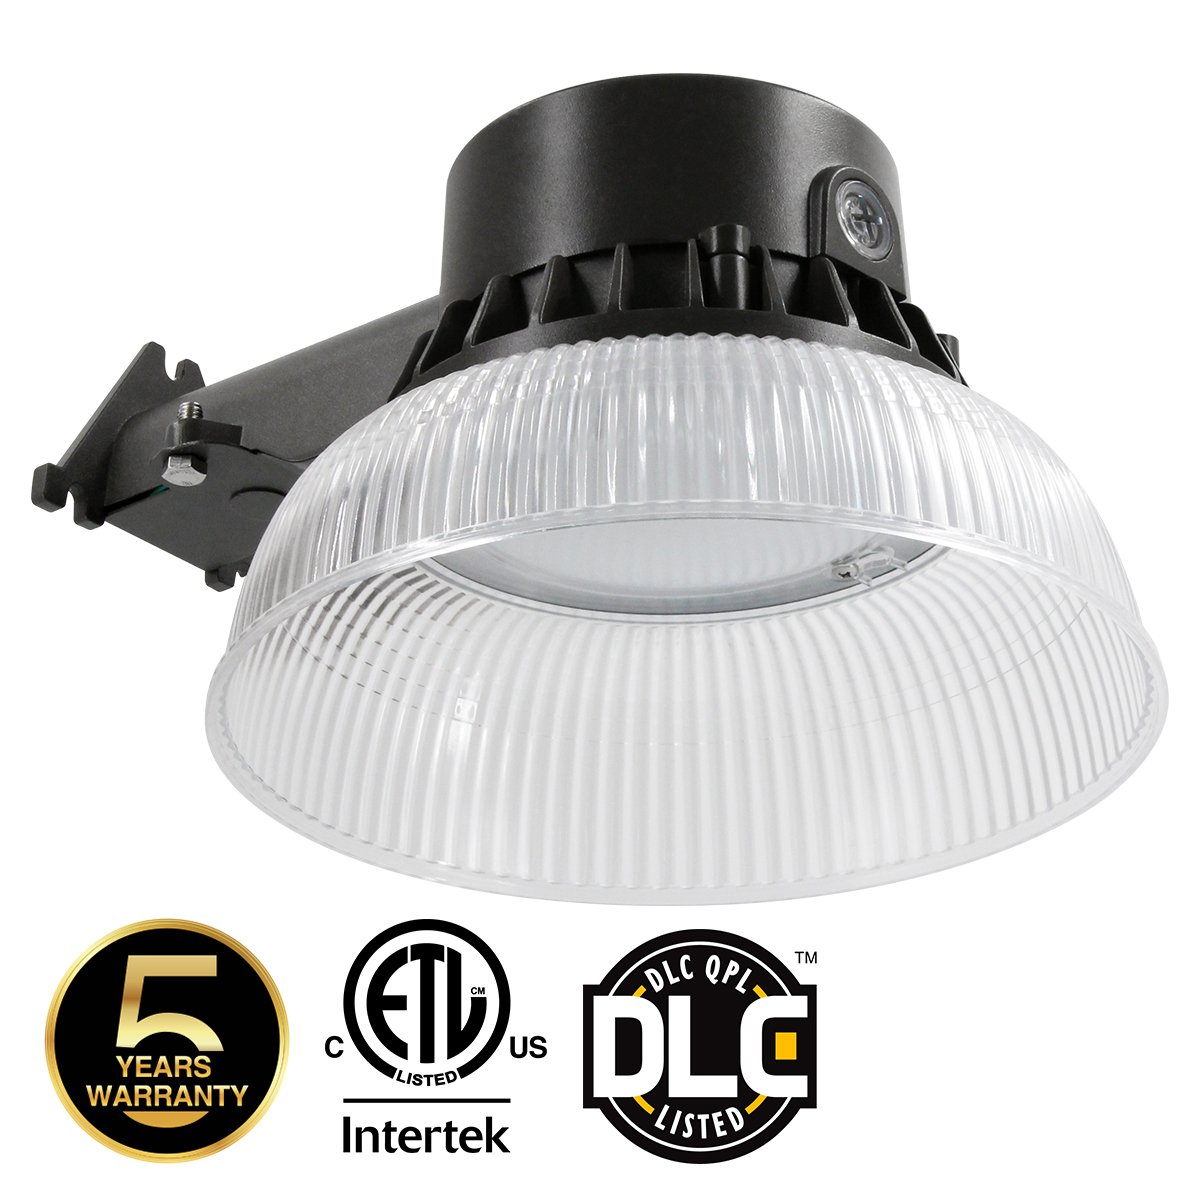 LED Yard Light for Area Lighting, LED Barn Light with Photocell 58W (550W Incandescent Or 250W HID Light Equiv.), 7500LM 5000K Daylight White, 5-Years Warranty Wet Location 50K B2 1PK